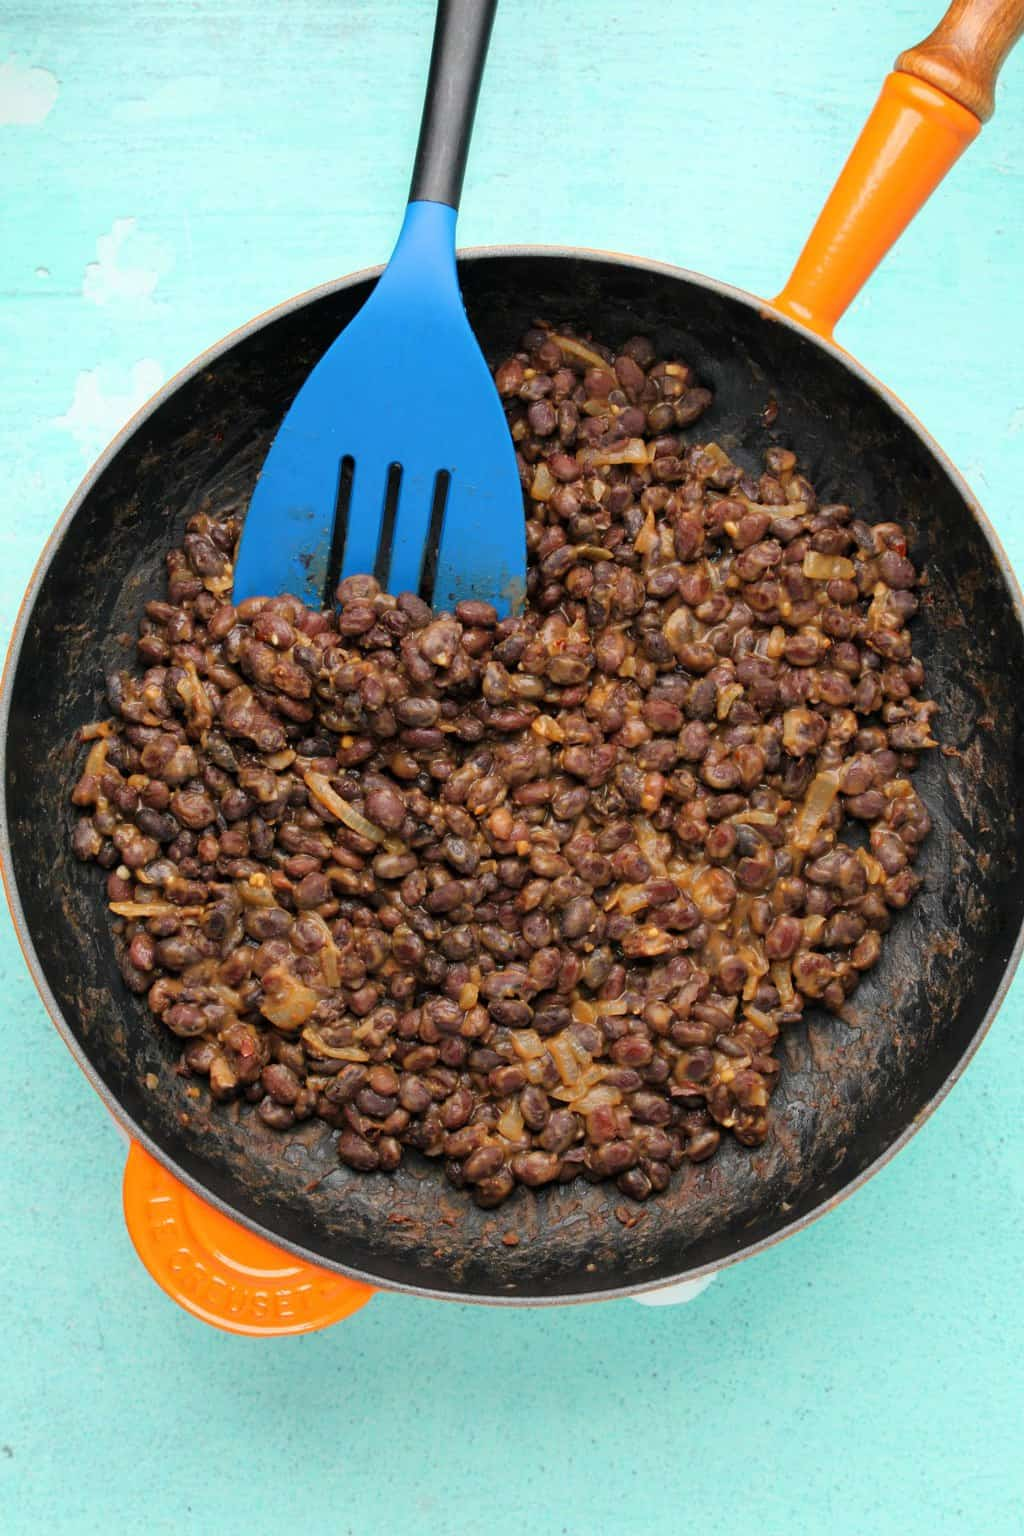 Black beans for vegan tacos, with onions and spices mixed up in a frying pan.